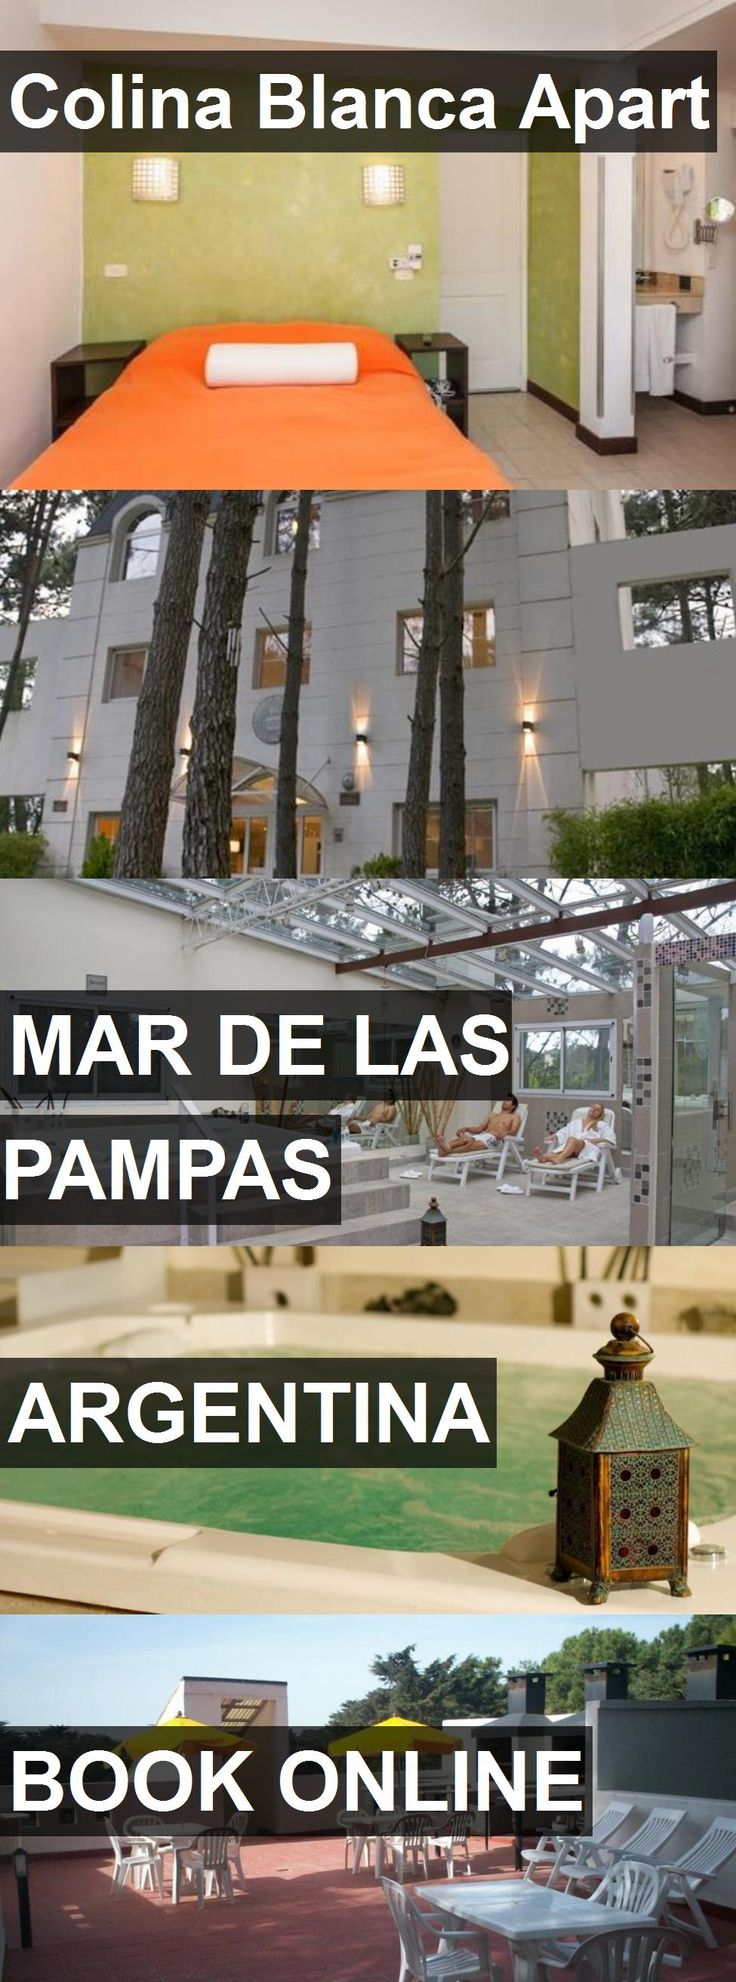 Hotel Colina Blanca Apart in Mar de las Pampas, Argentina. For more information, photos, reviews and best prices please follow the link. #Argentina #MardelasPampas #ColinaBlancaApart #hotel #travel #vacation